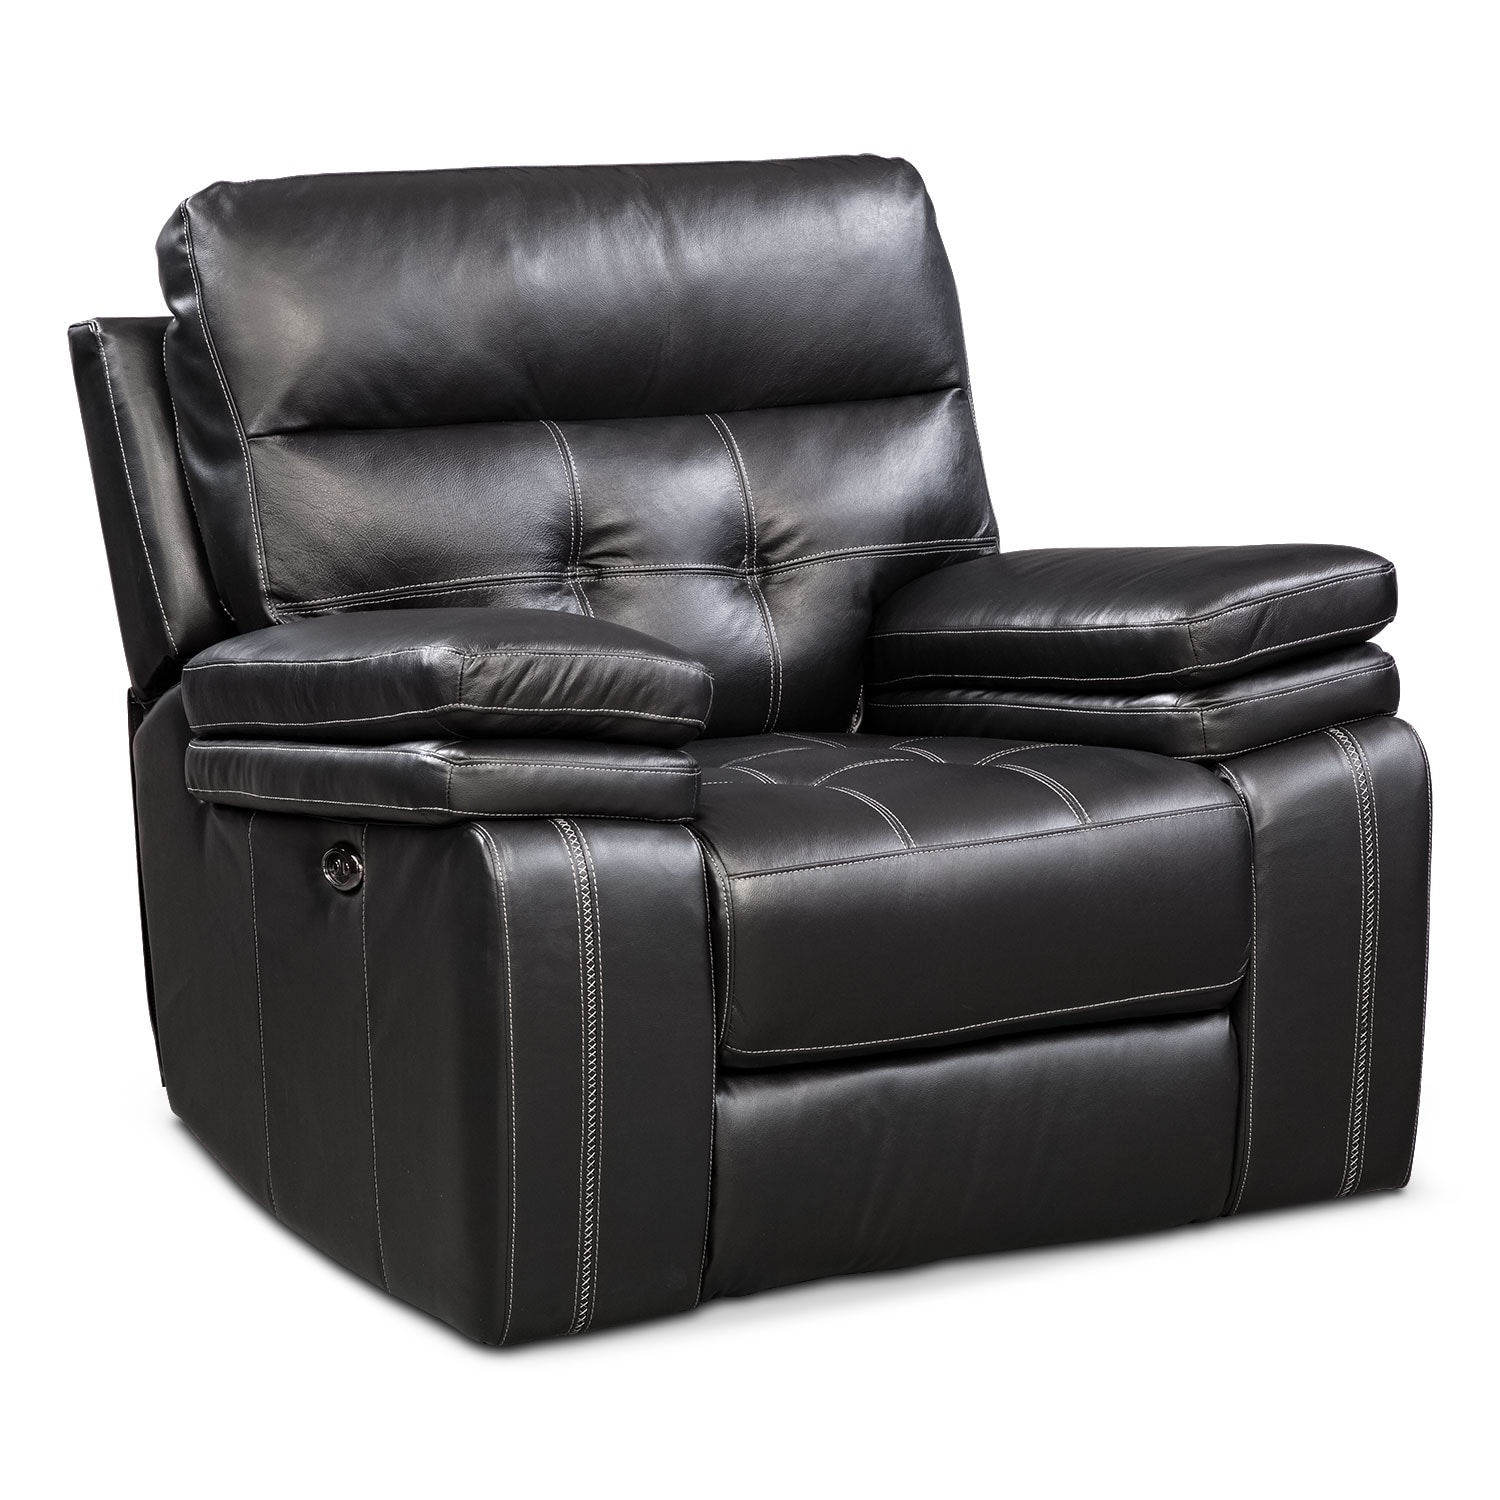 Brisco Power Glider Recliner   Black